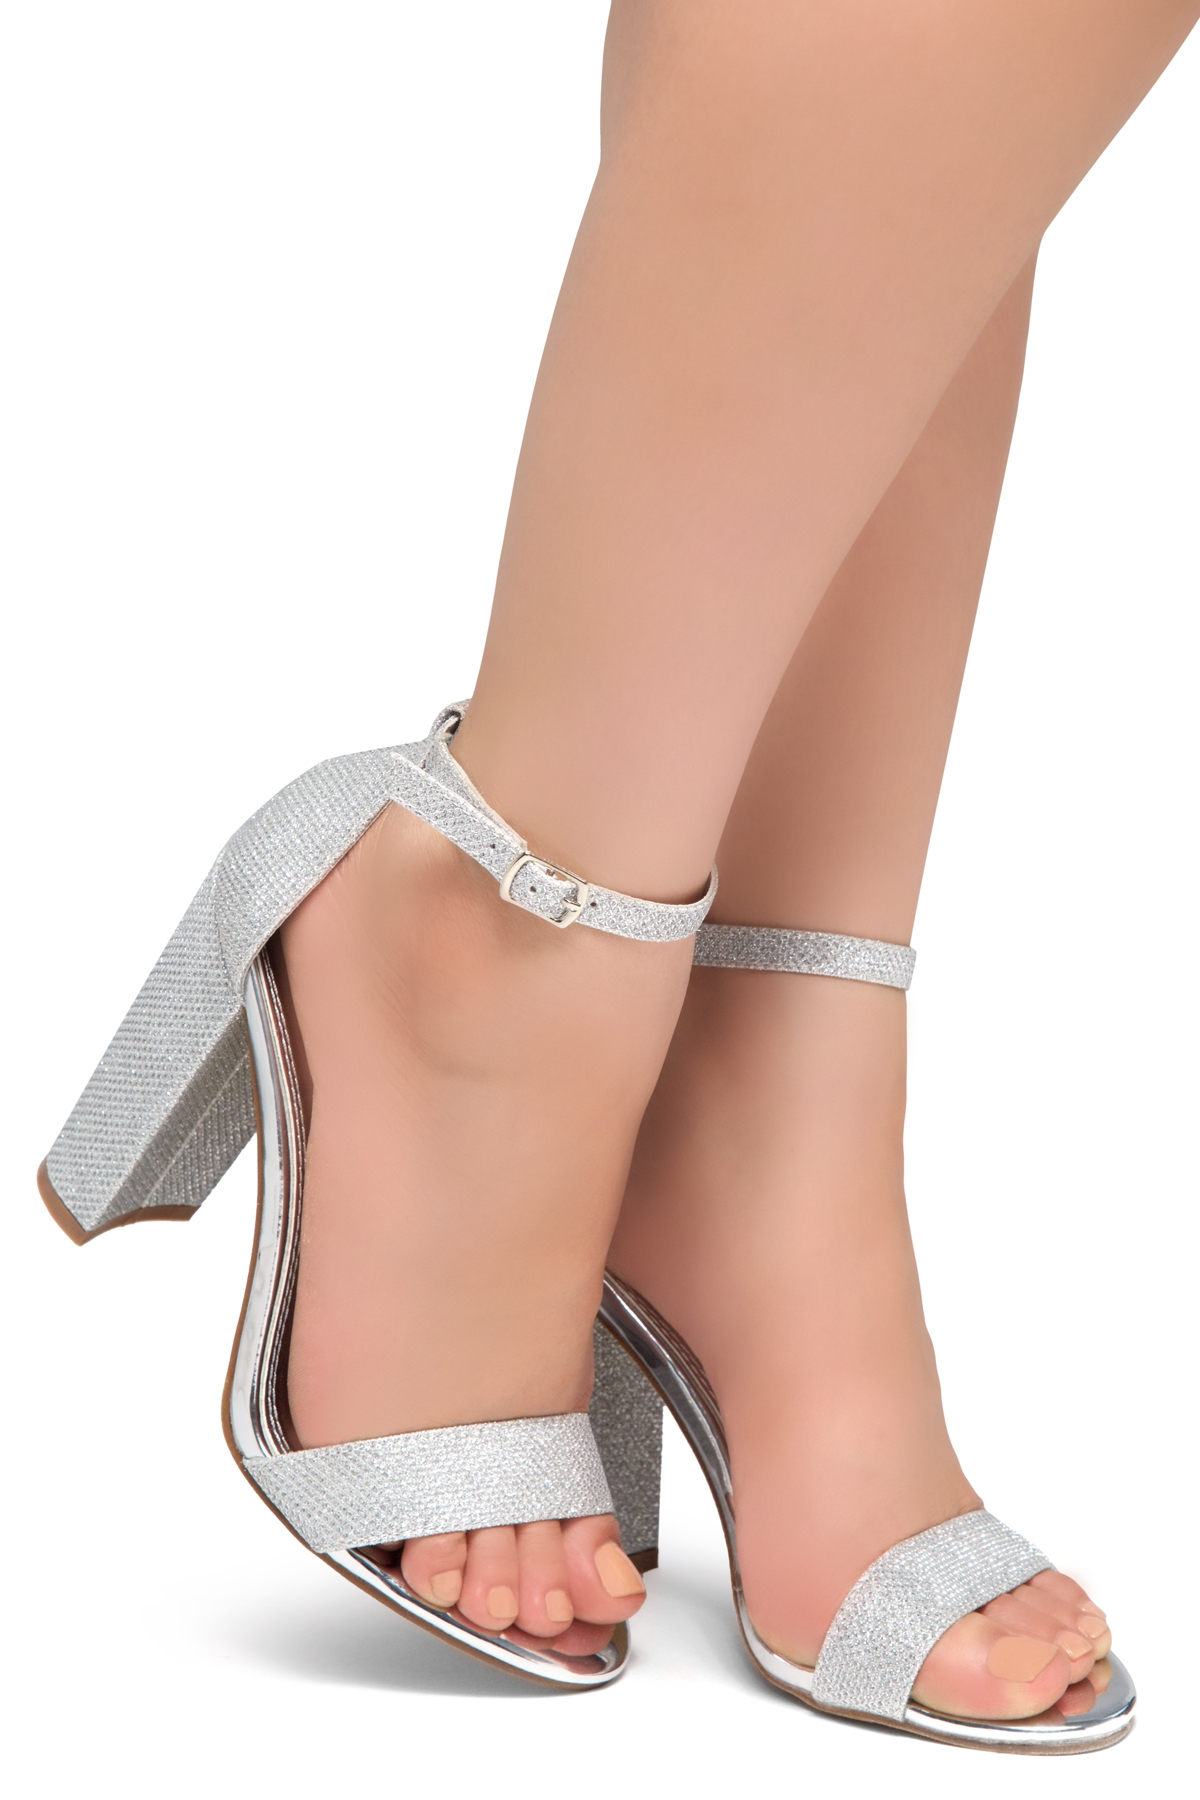 e6e37d863e00 HerStyle Rosemmina Open Toe Ankle Strap Chunky Heel (Silver ...